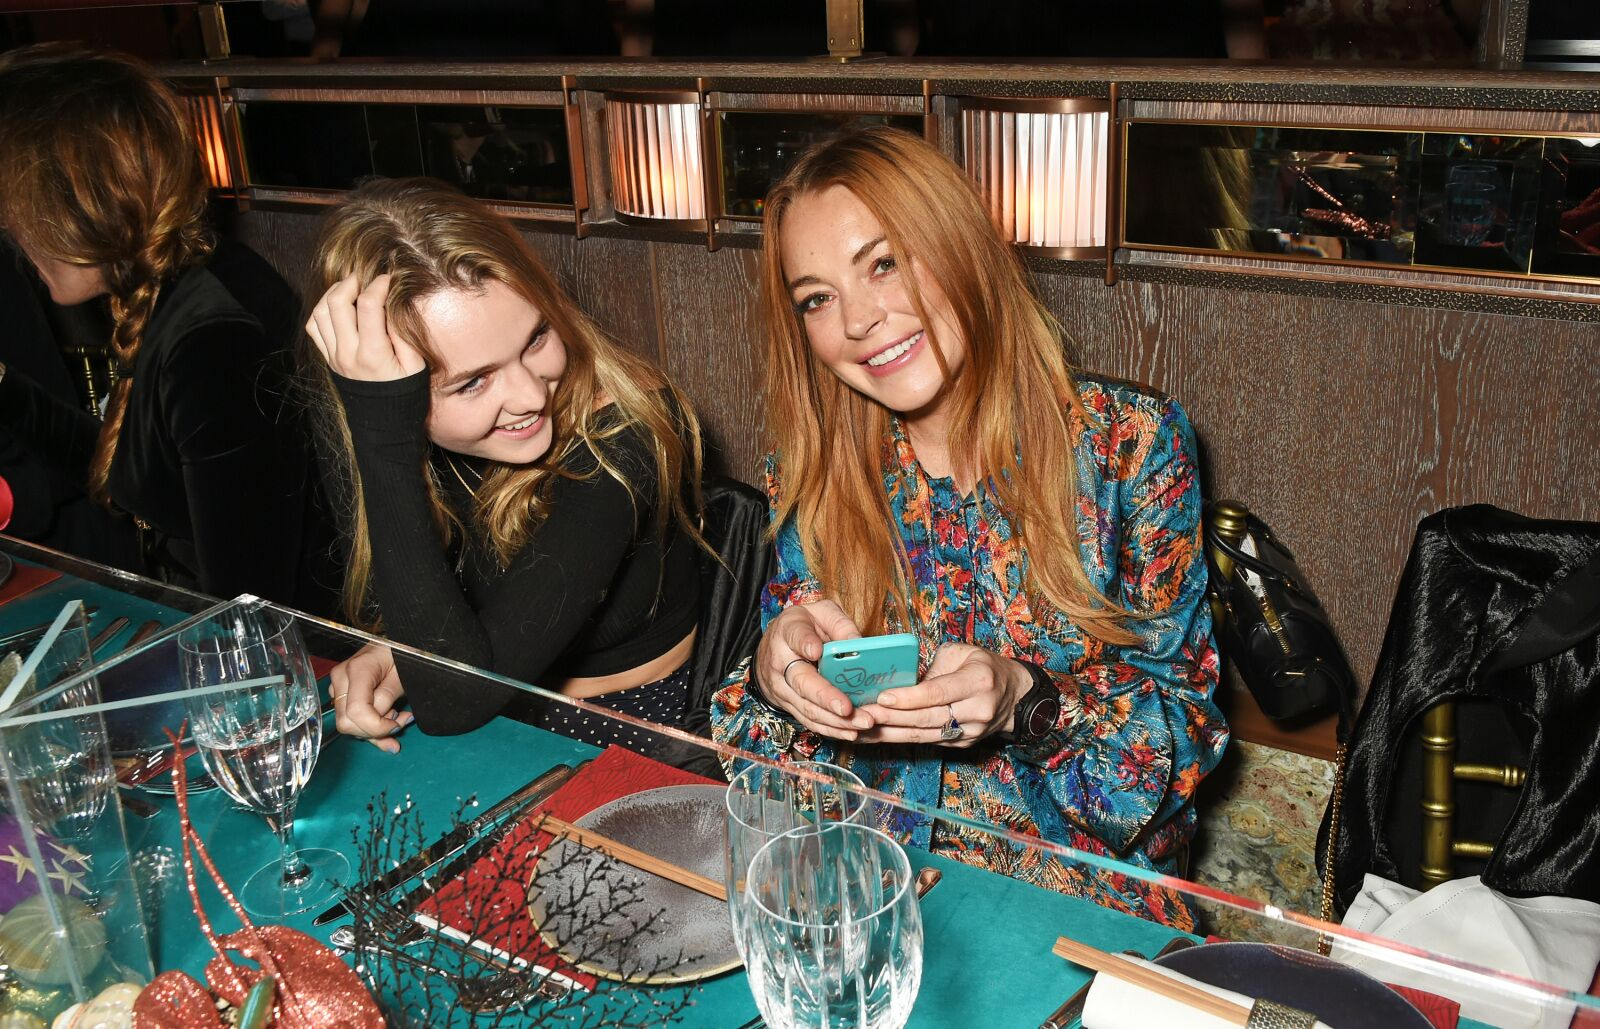 LONDON, ENGLAND - OCTOBER 08: Immy Waterhouse (L) and Lindsay Lohan attend the launch of Sexy Fish, London in Berkeley Square on October 8, 2015 in London, England. (Photo by David M. Benett/Dave Benett/Getty Images for Caprice Holdings Limited)